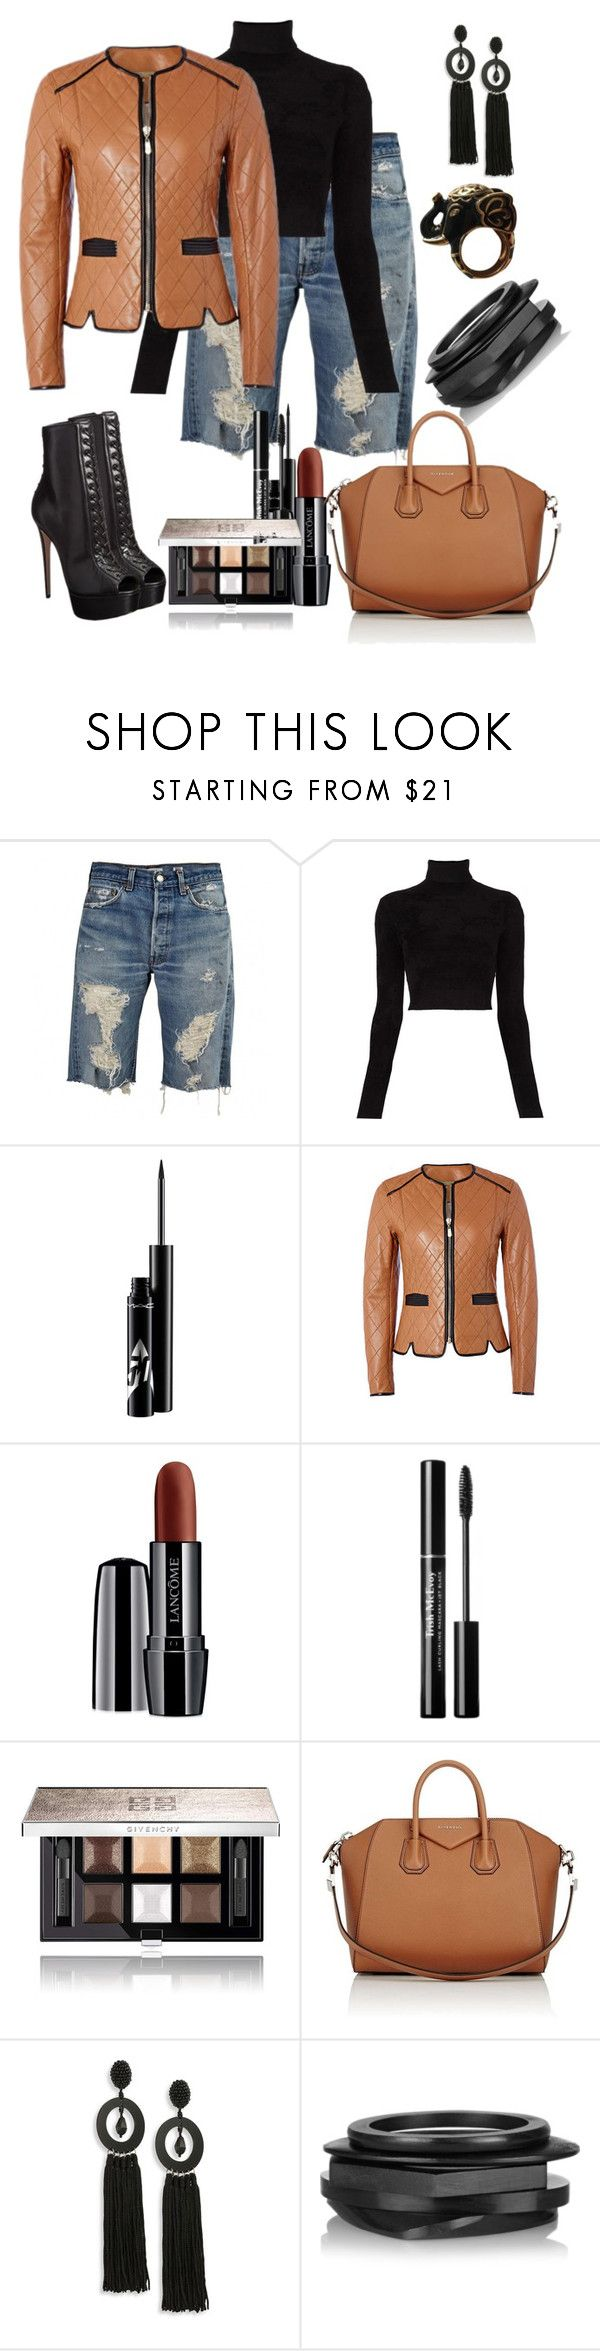 """""""Untitled #489"""" by fasttrack2fashion ❤ liked on Polyvore featuring A.L.C., Ruthie Davis, Richards Radcliffe, Lancôme, Givenchy, Oscar de la Renta, Kenneth Jay Lane and Paul & Joe"""